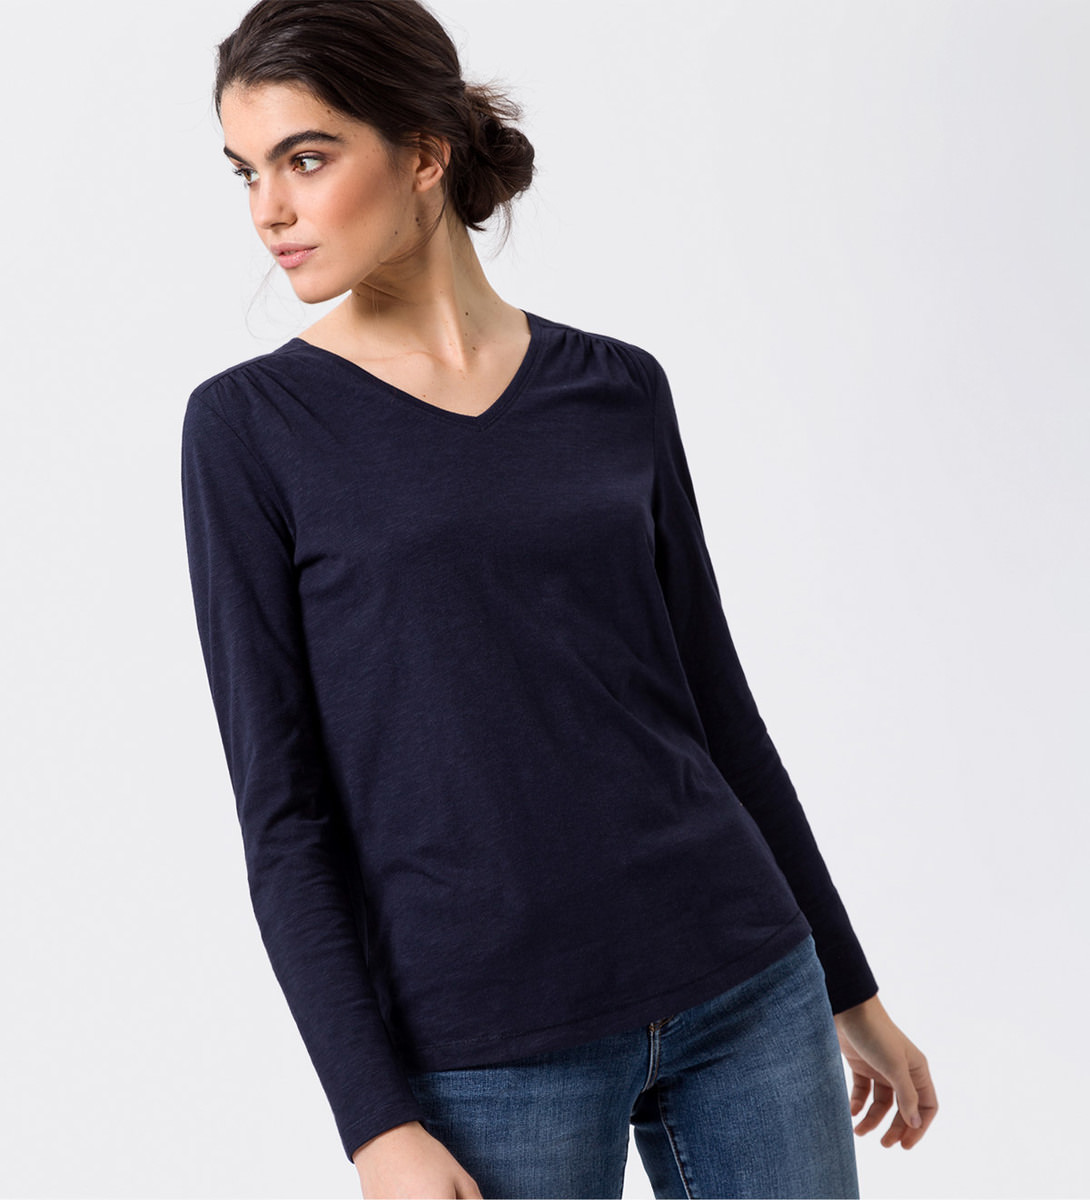 Shirt im Basic-Look in blue black